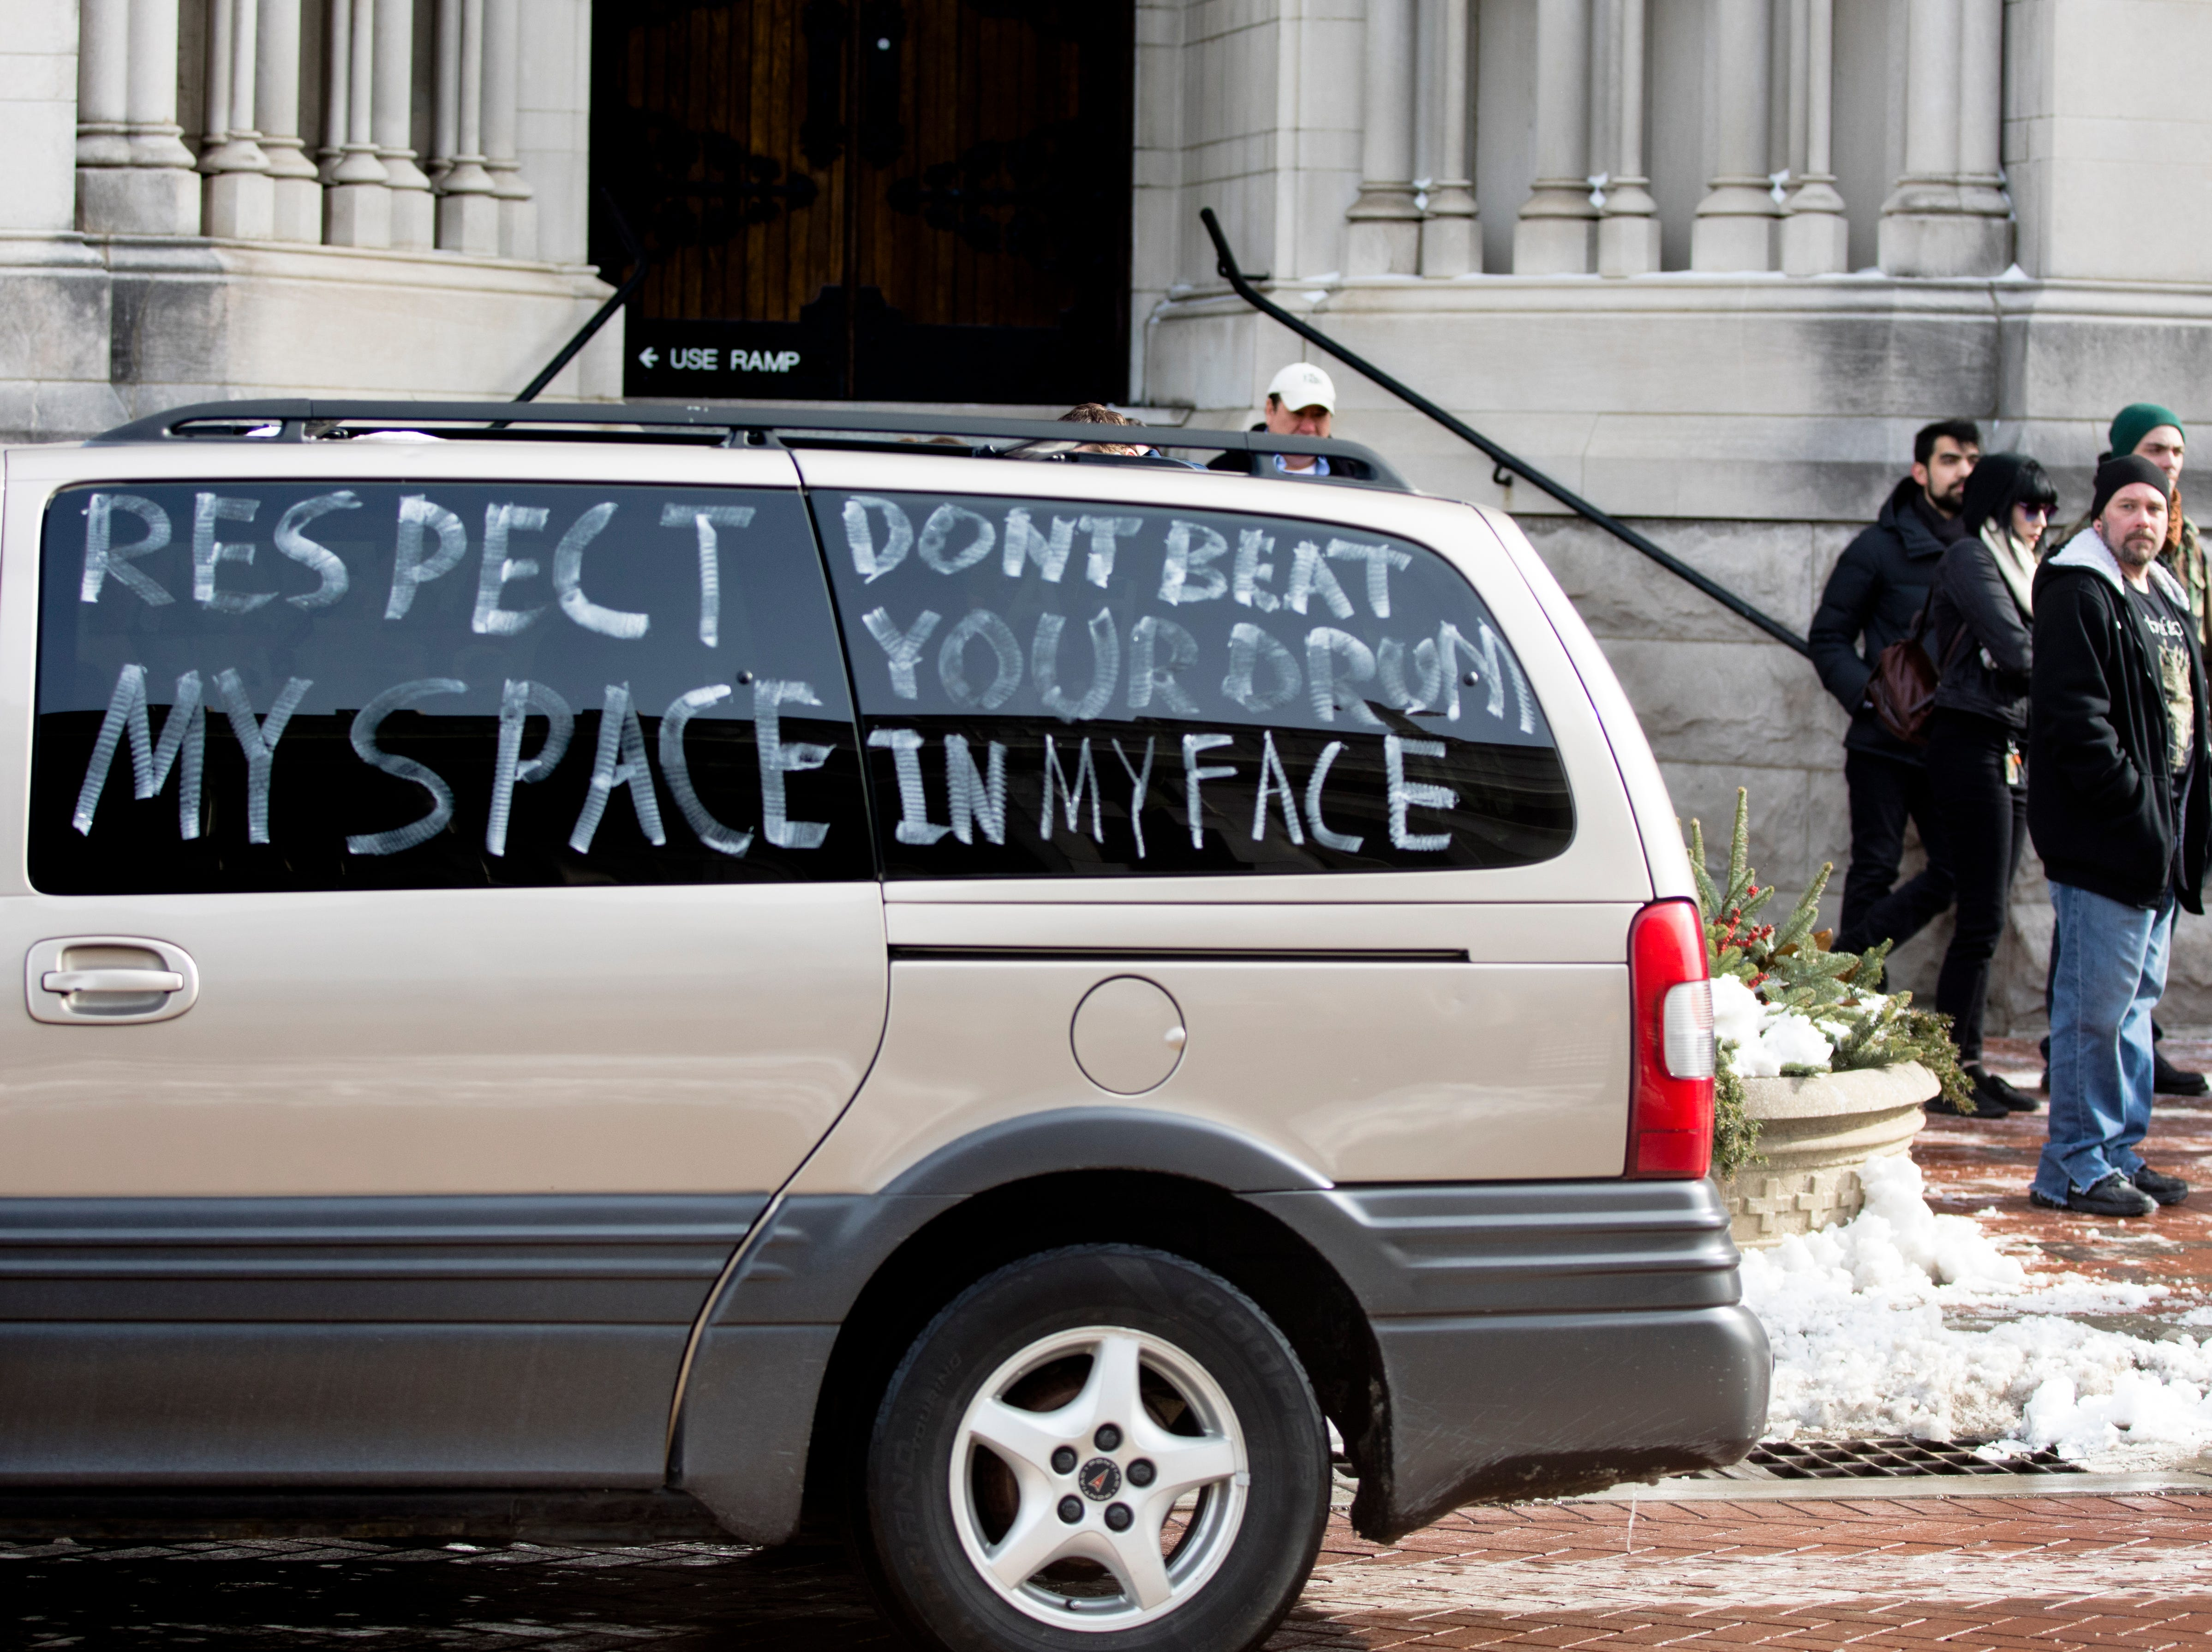 A van drives around the block during a protest of the Catholic Diocese of Covington outside the Diocese of Covington building in Covington, Kentucky, on Tuesday, Jan. 22, 2019.  The protest was planned by the American Indian Movement in response to incident in Washington DC when students of Covington Catholic High School were filmed in an altercation with a Native American man.